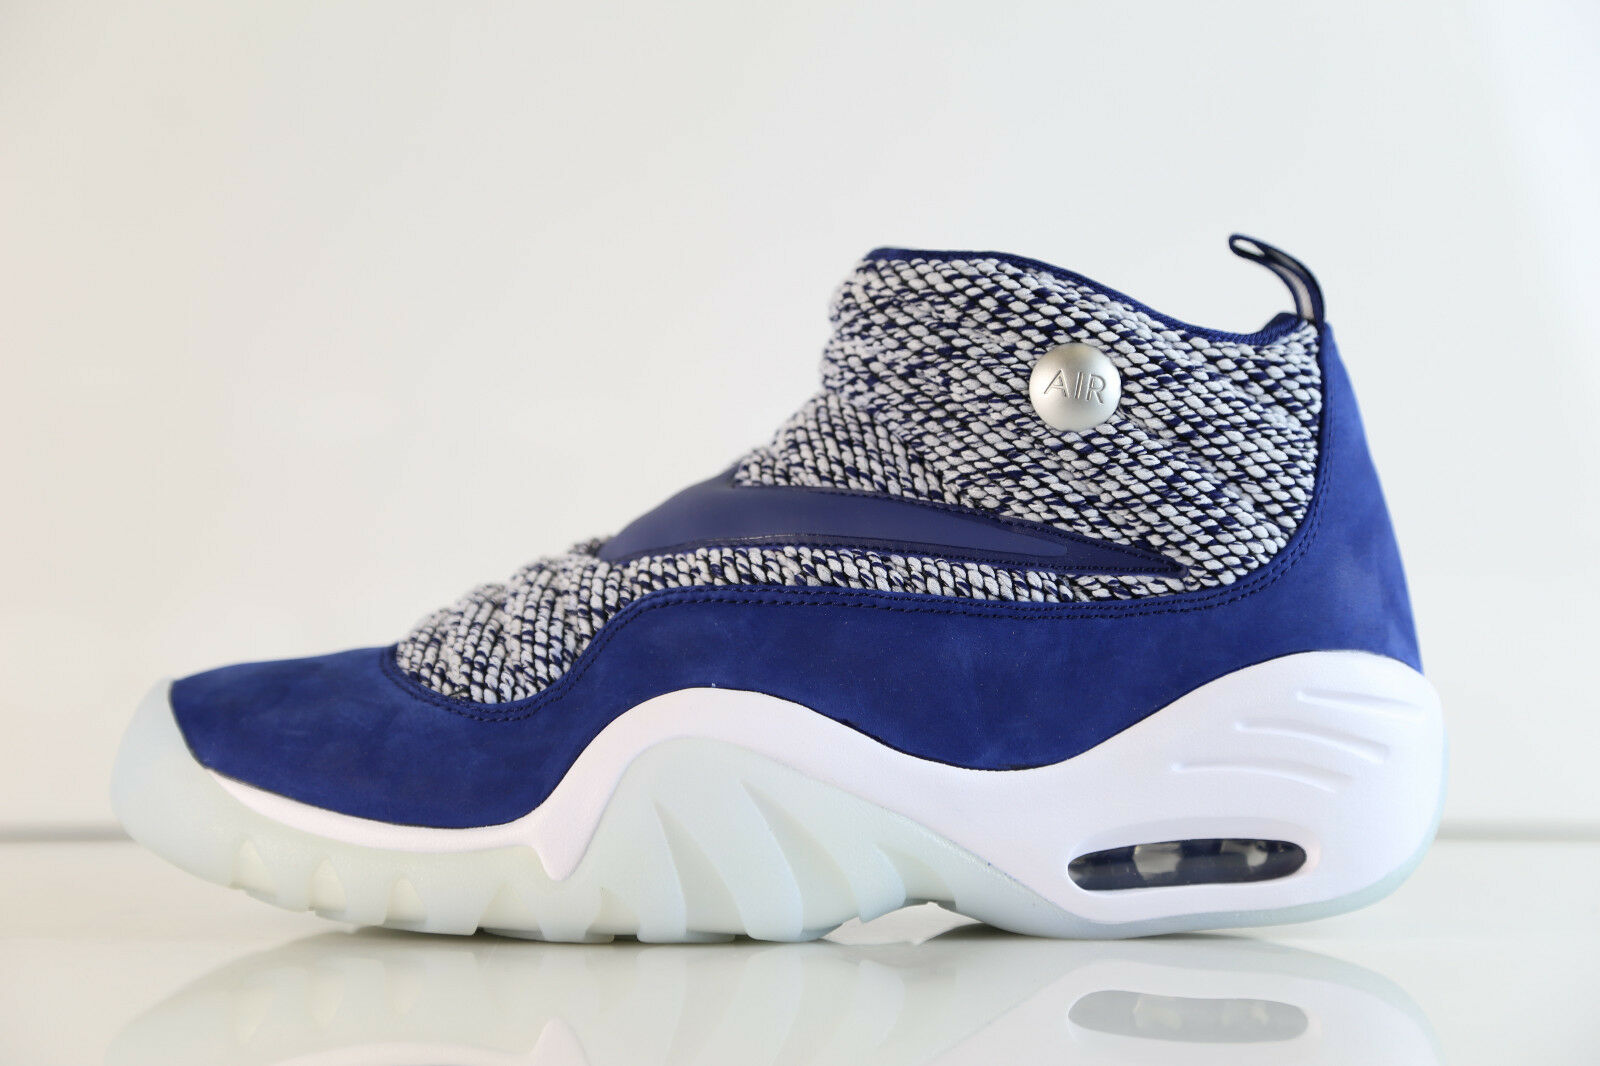 Nike Lab Air Shake NDestrukt x Pigalle Loyal Blue Royal AA4315-400 8-13 max 1 The most popular shoes for men and women